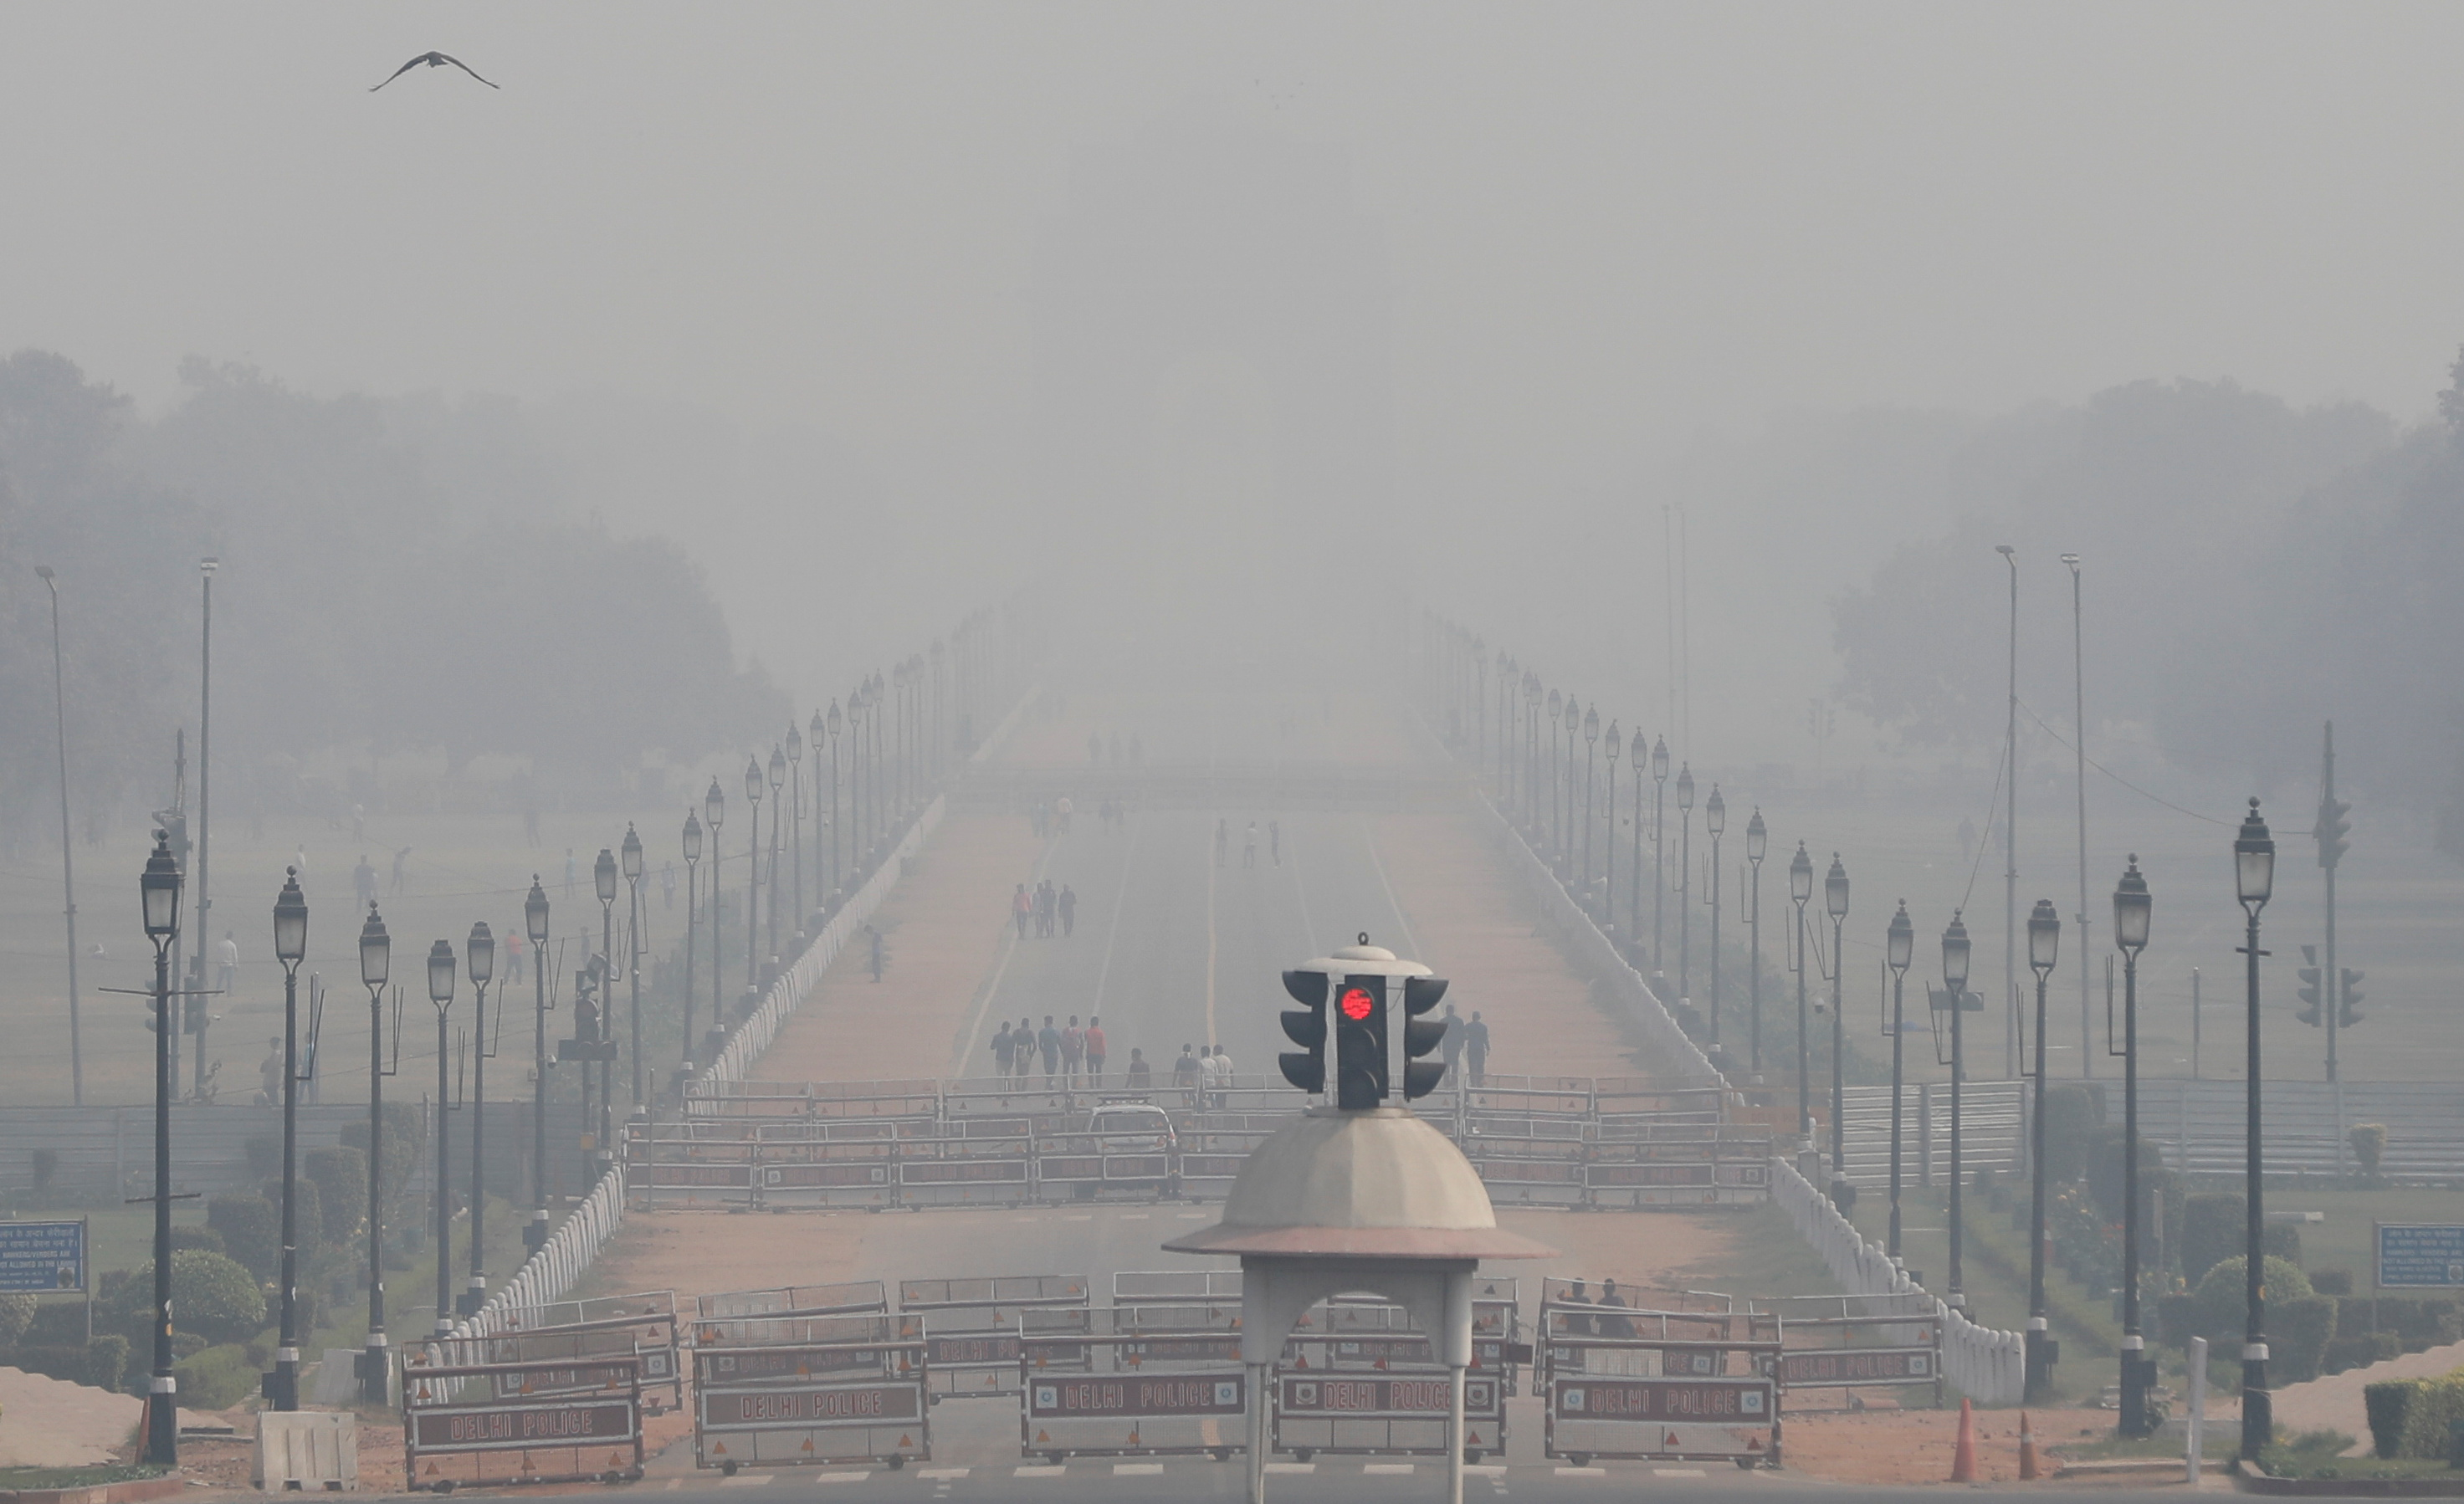 People walk near India Gate on a smoggy afternoon in New Delhi, India, November 15, 2020. REUTERS/Adnan Abidi